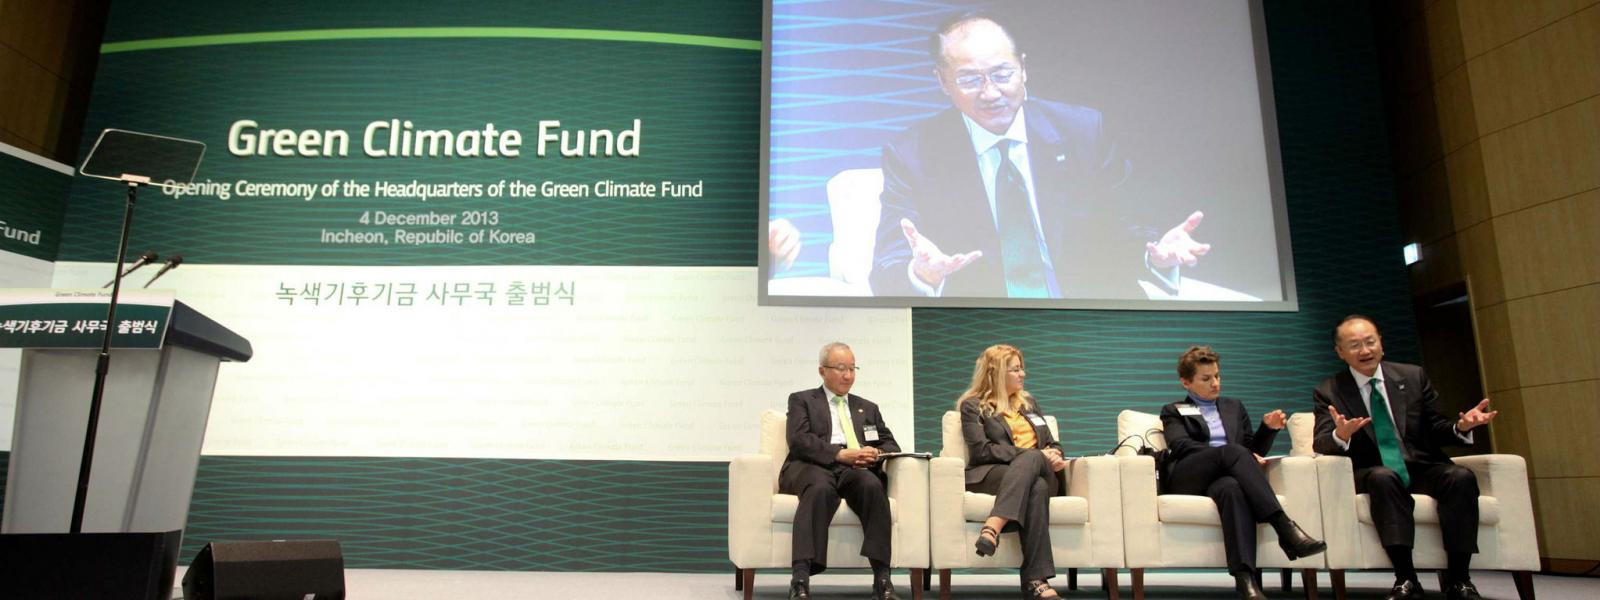 Representatives on stage at a meeting of Green Climate Fund in Songdo, South Korea